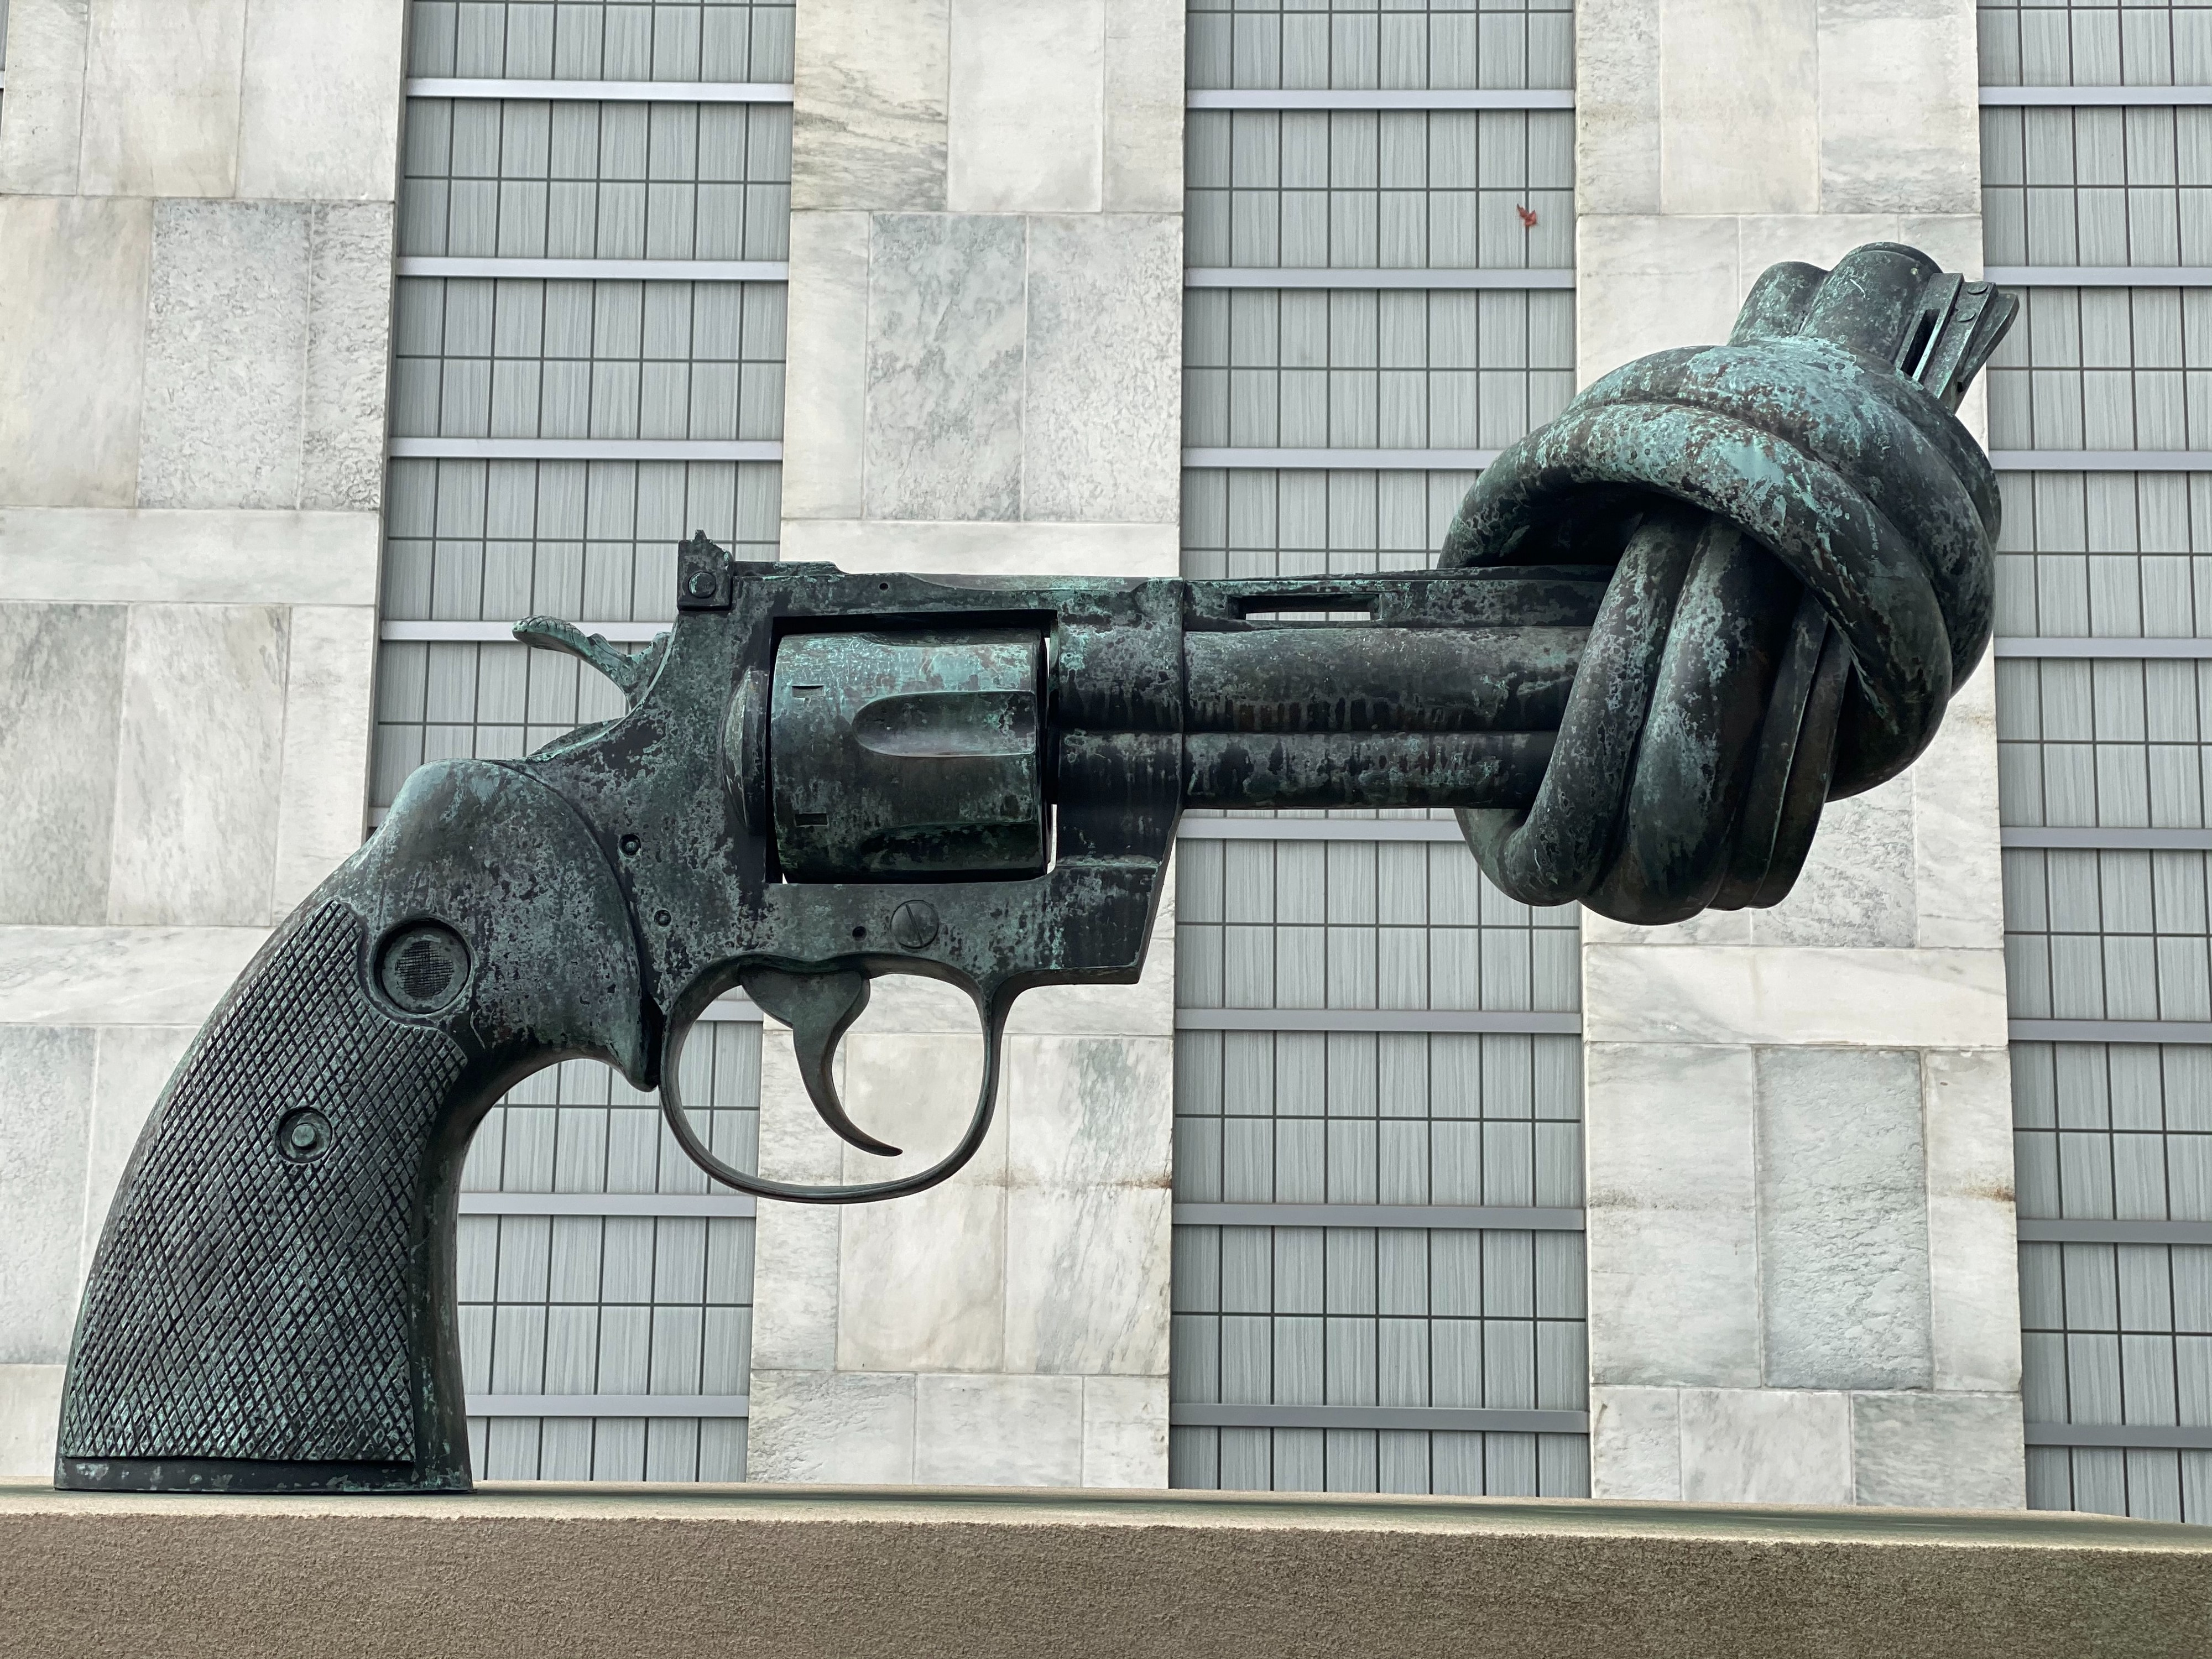 Sculpture of a gun with the barrel twisted in a knot.